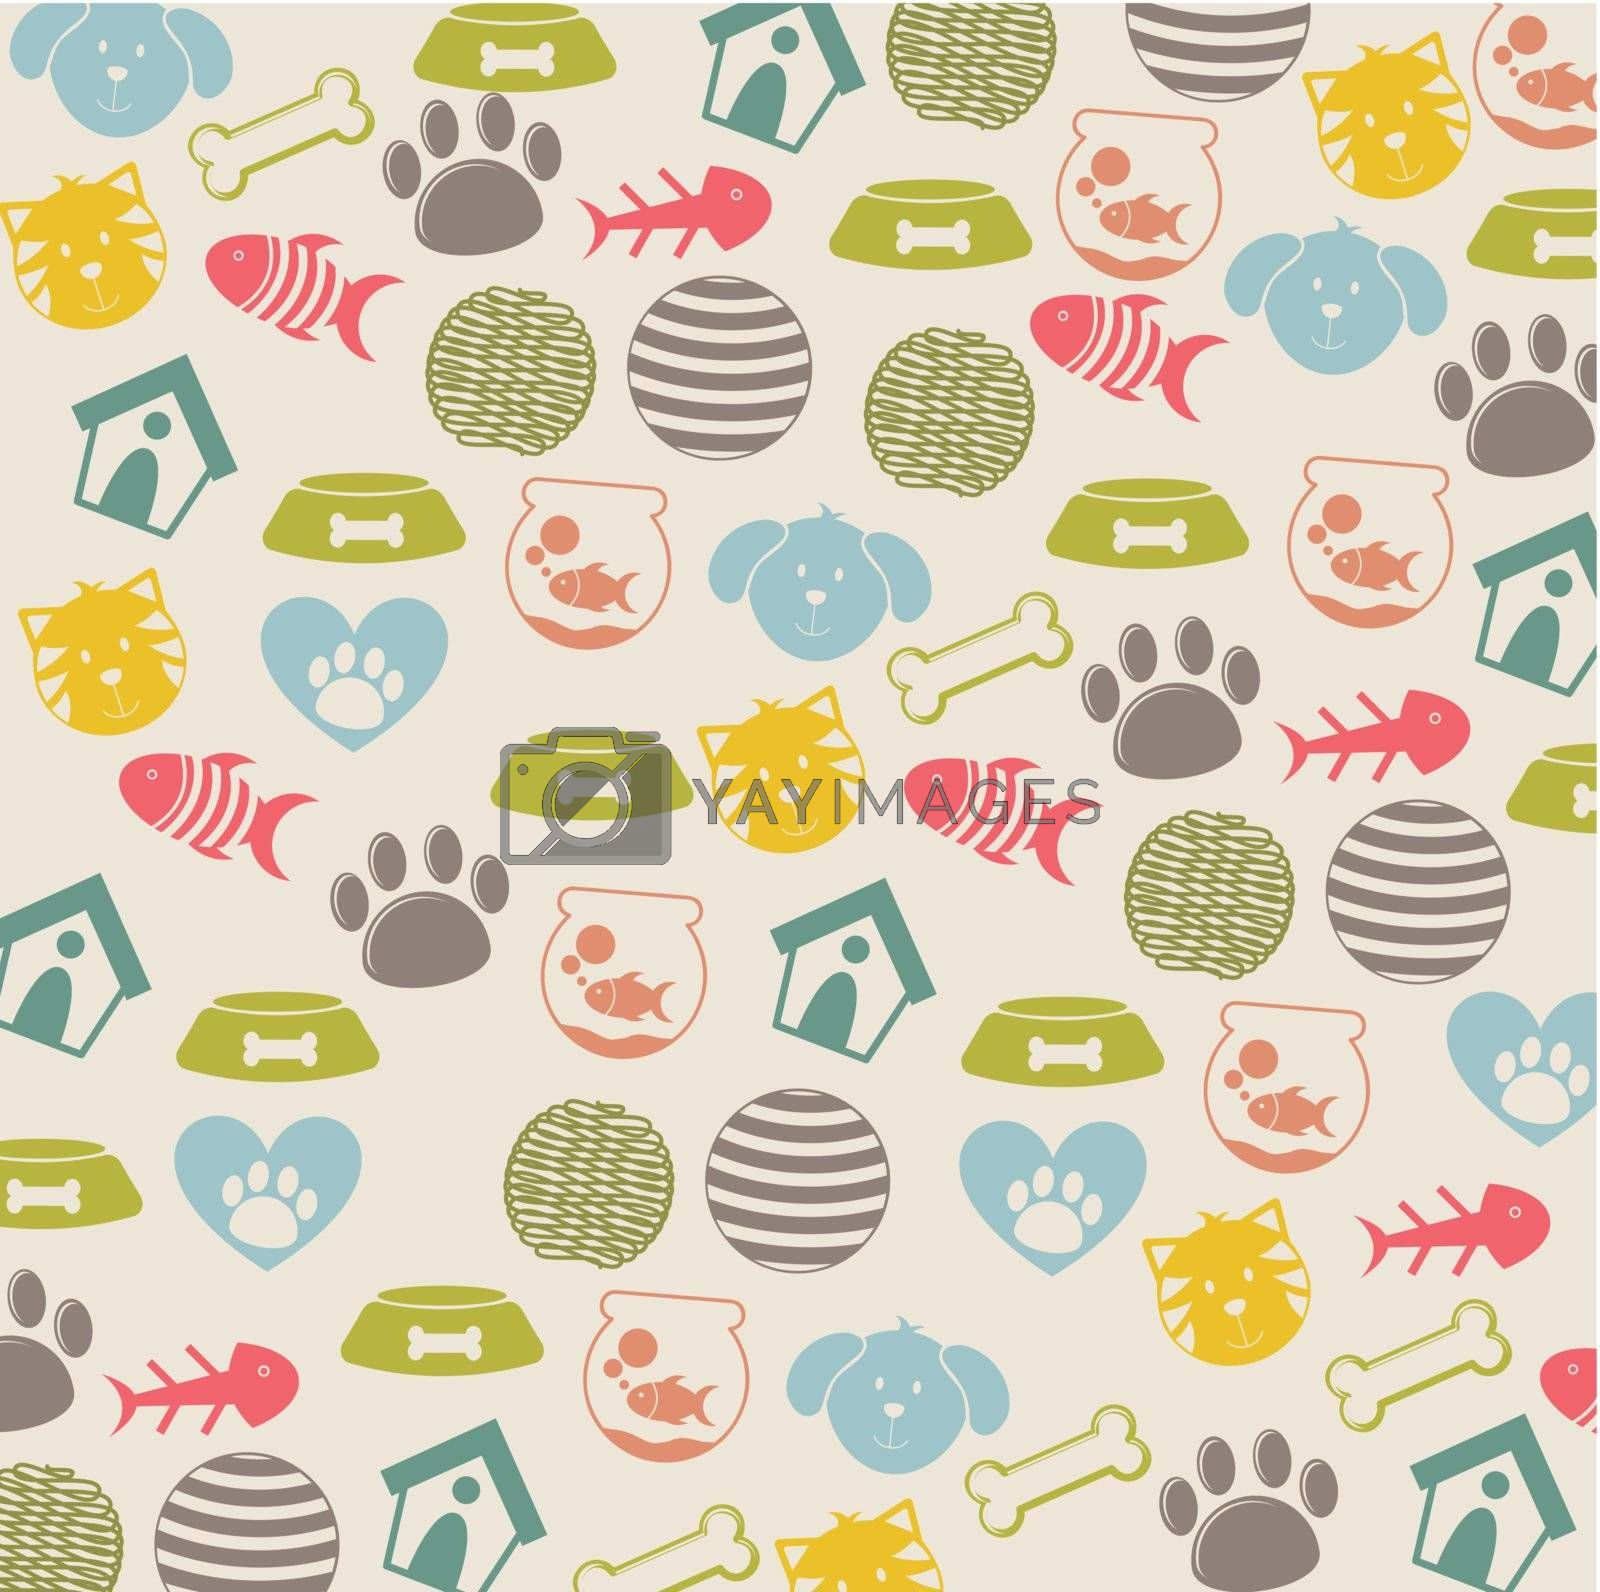 pets icons over beige background. vector illustration